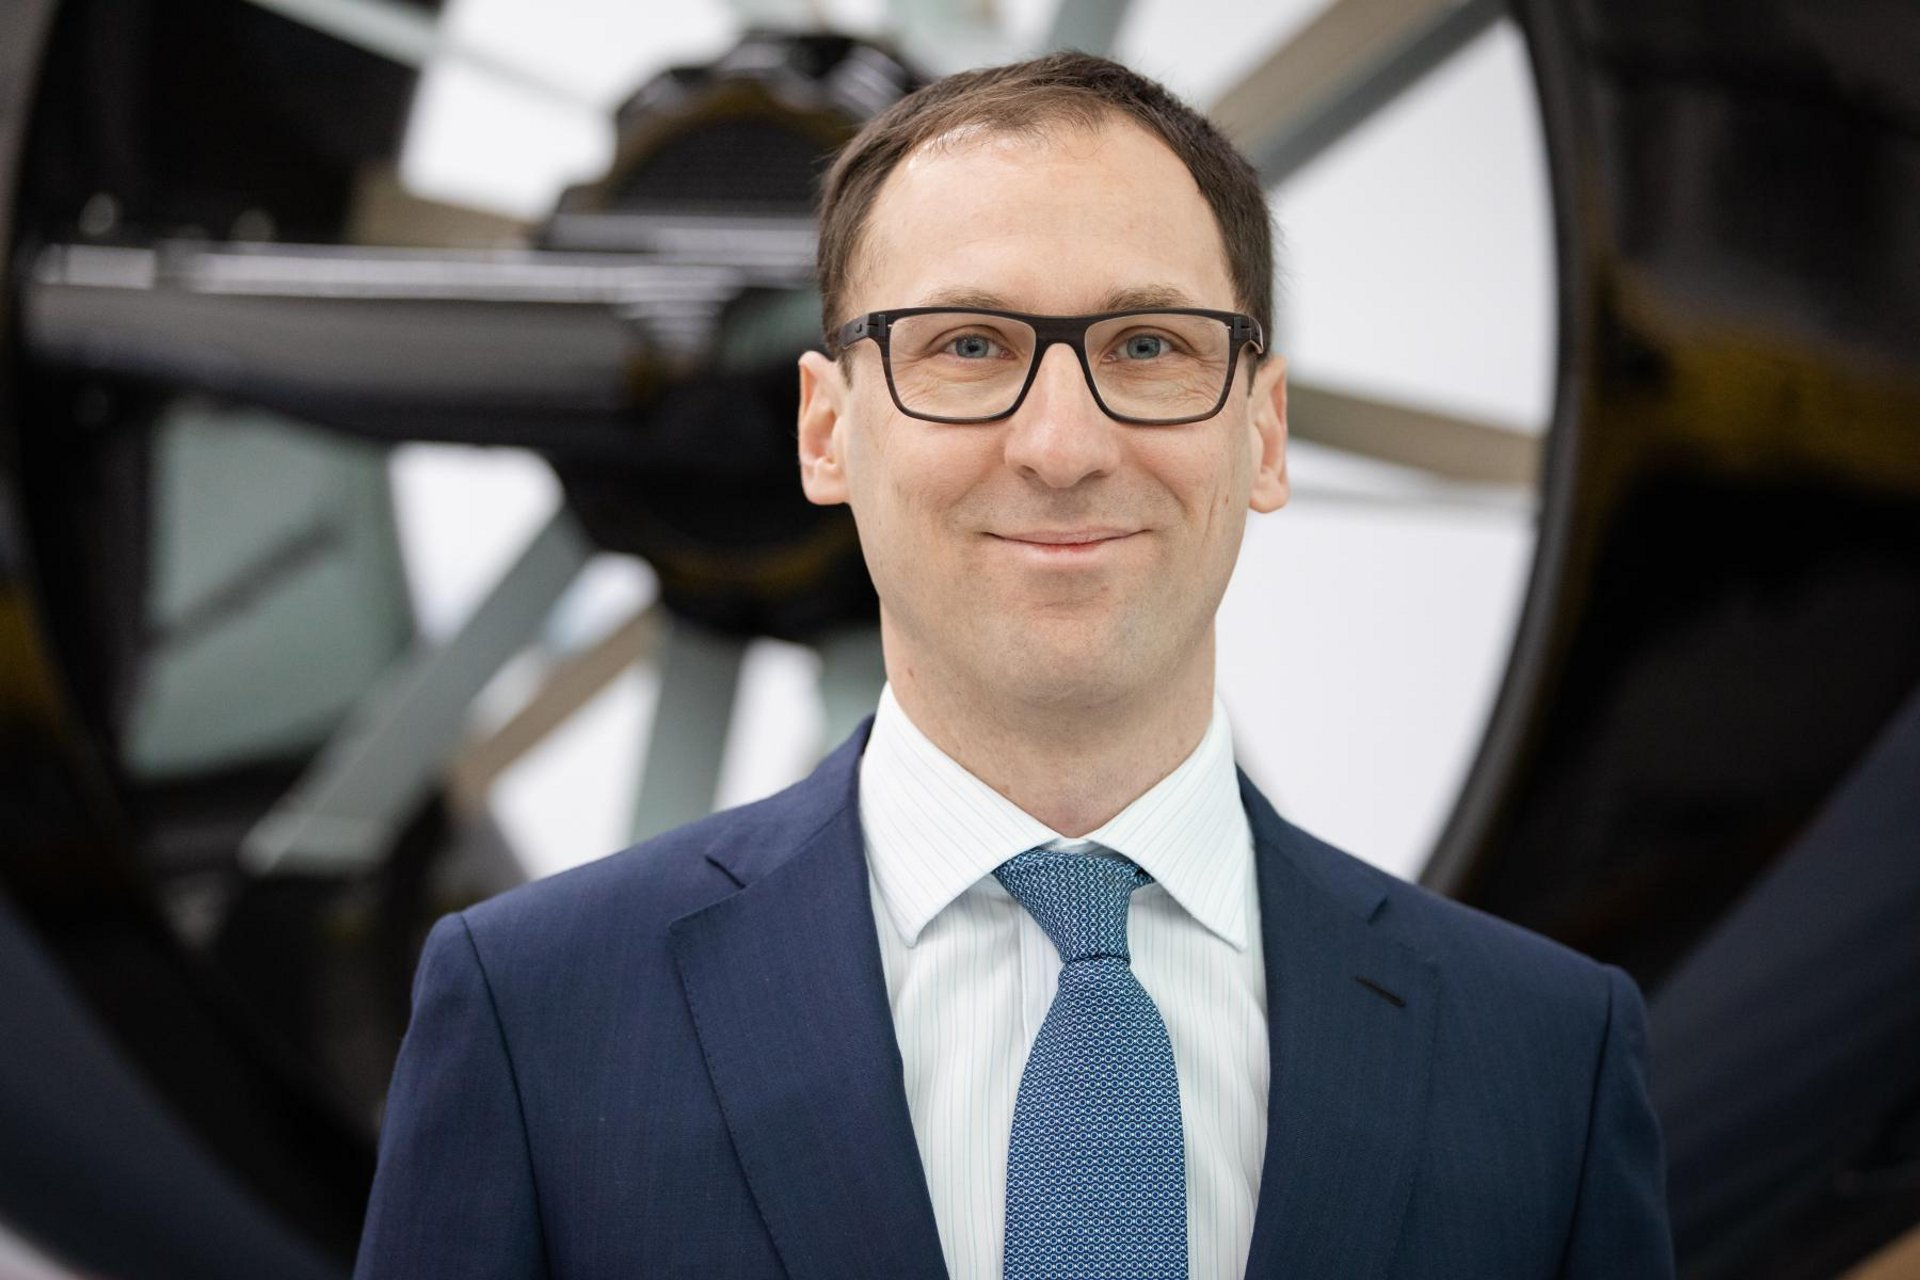 Airbus Helicopters has appointed Thomas Hundt Executive Vice-President Finance and Member of the Executive Committee of Airbus Helicopters, effective 1 March 2020.